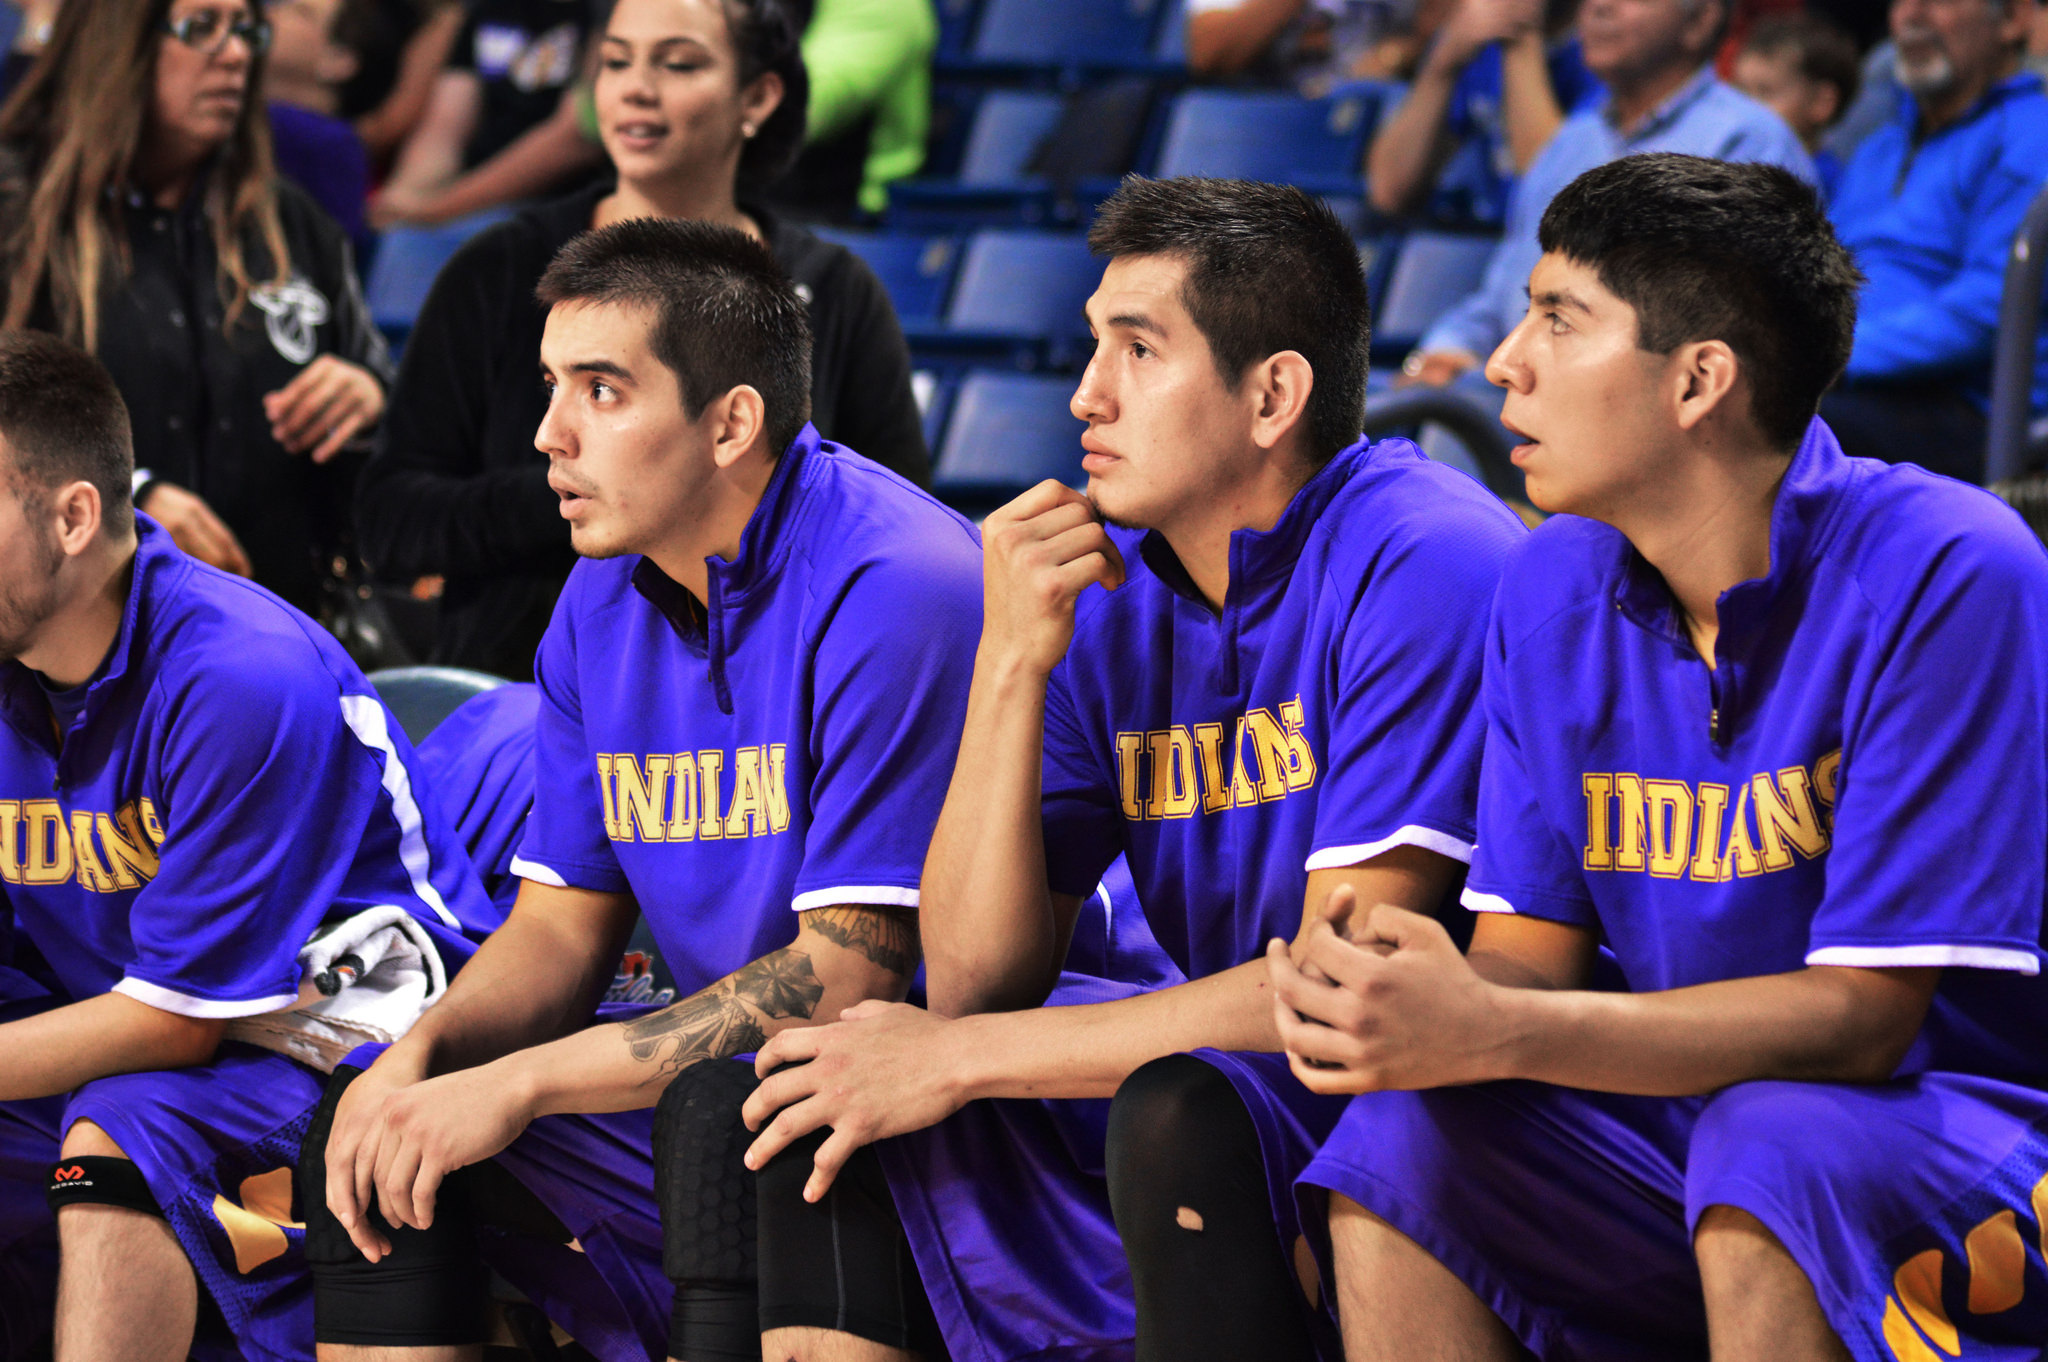 Haskell Indians vs. Tulsa Golden Hurricanes